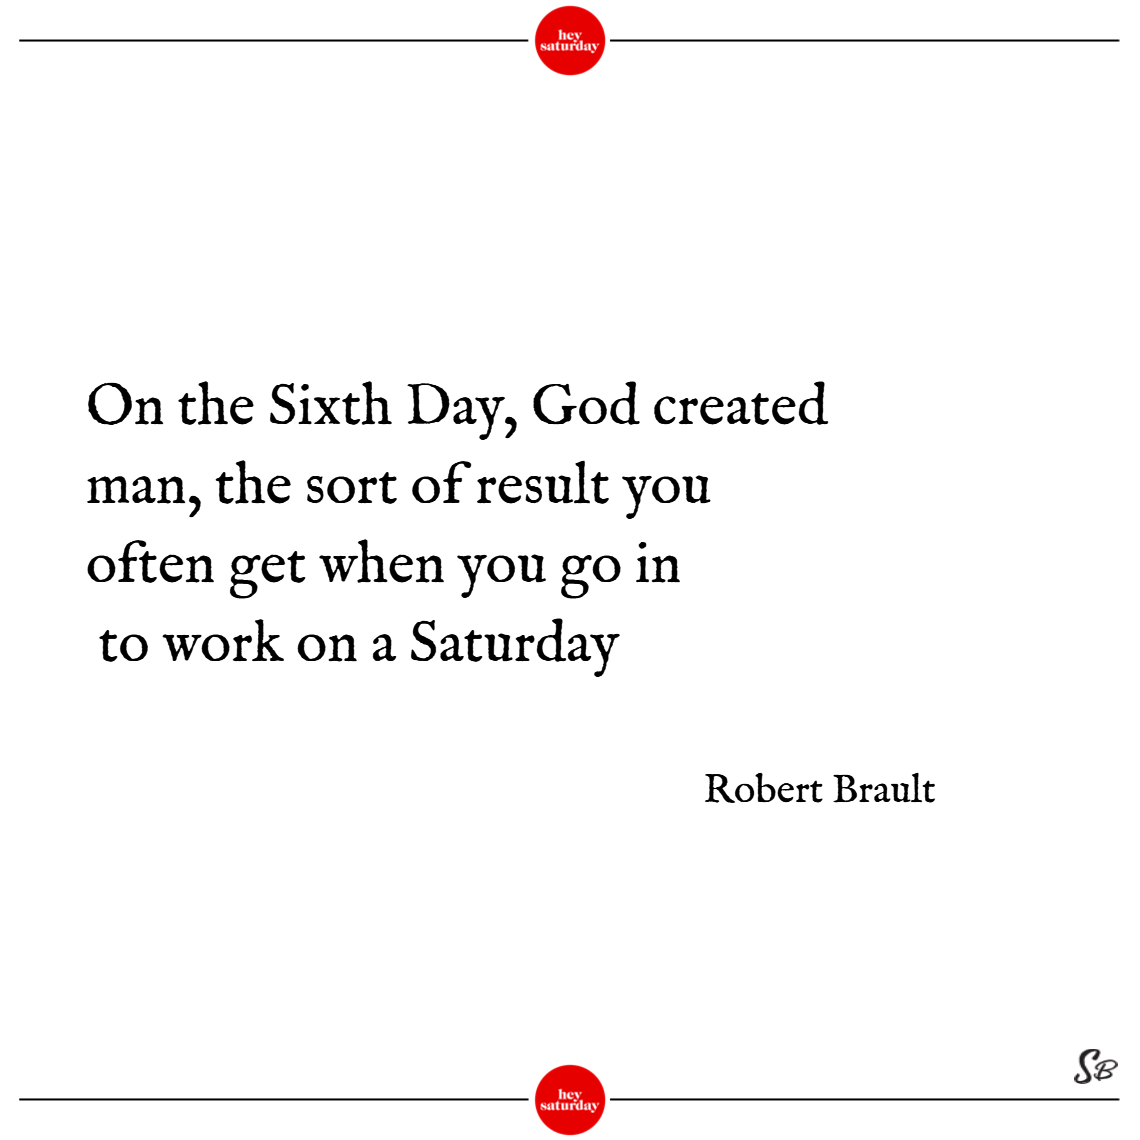 On the sixth day, god created man, the sort of result you often get when you go in to work on a saturday. – robert brault